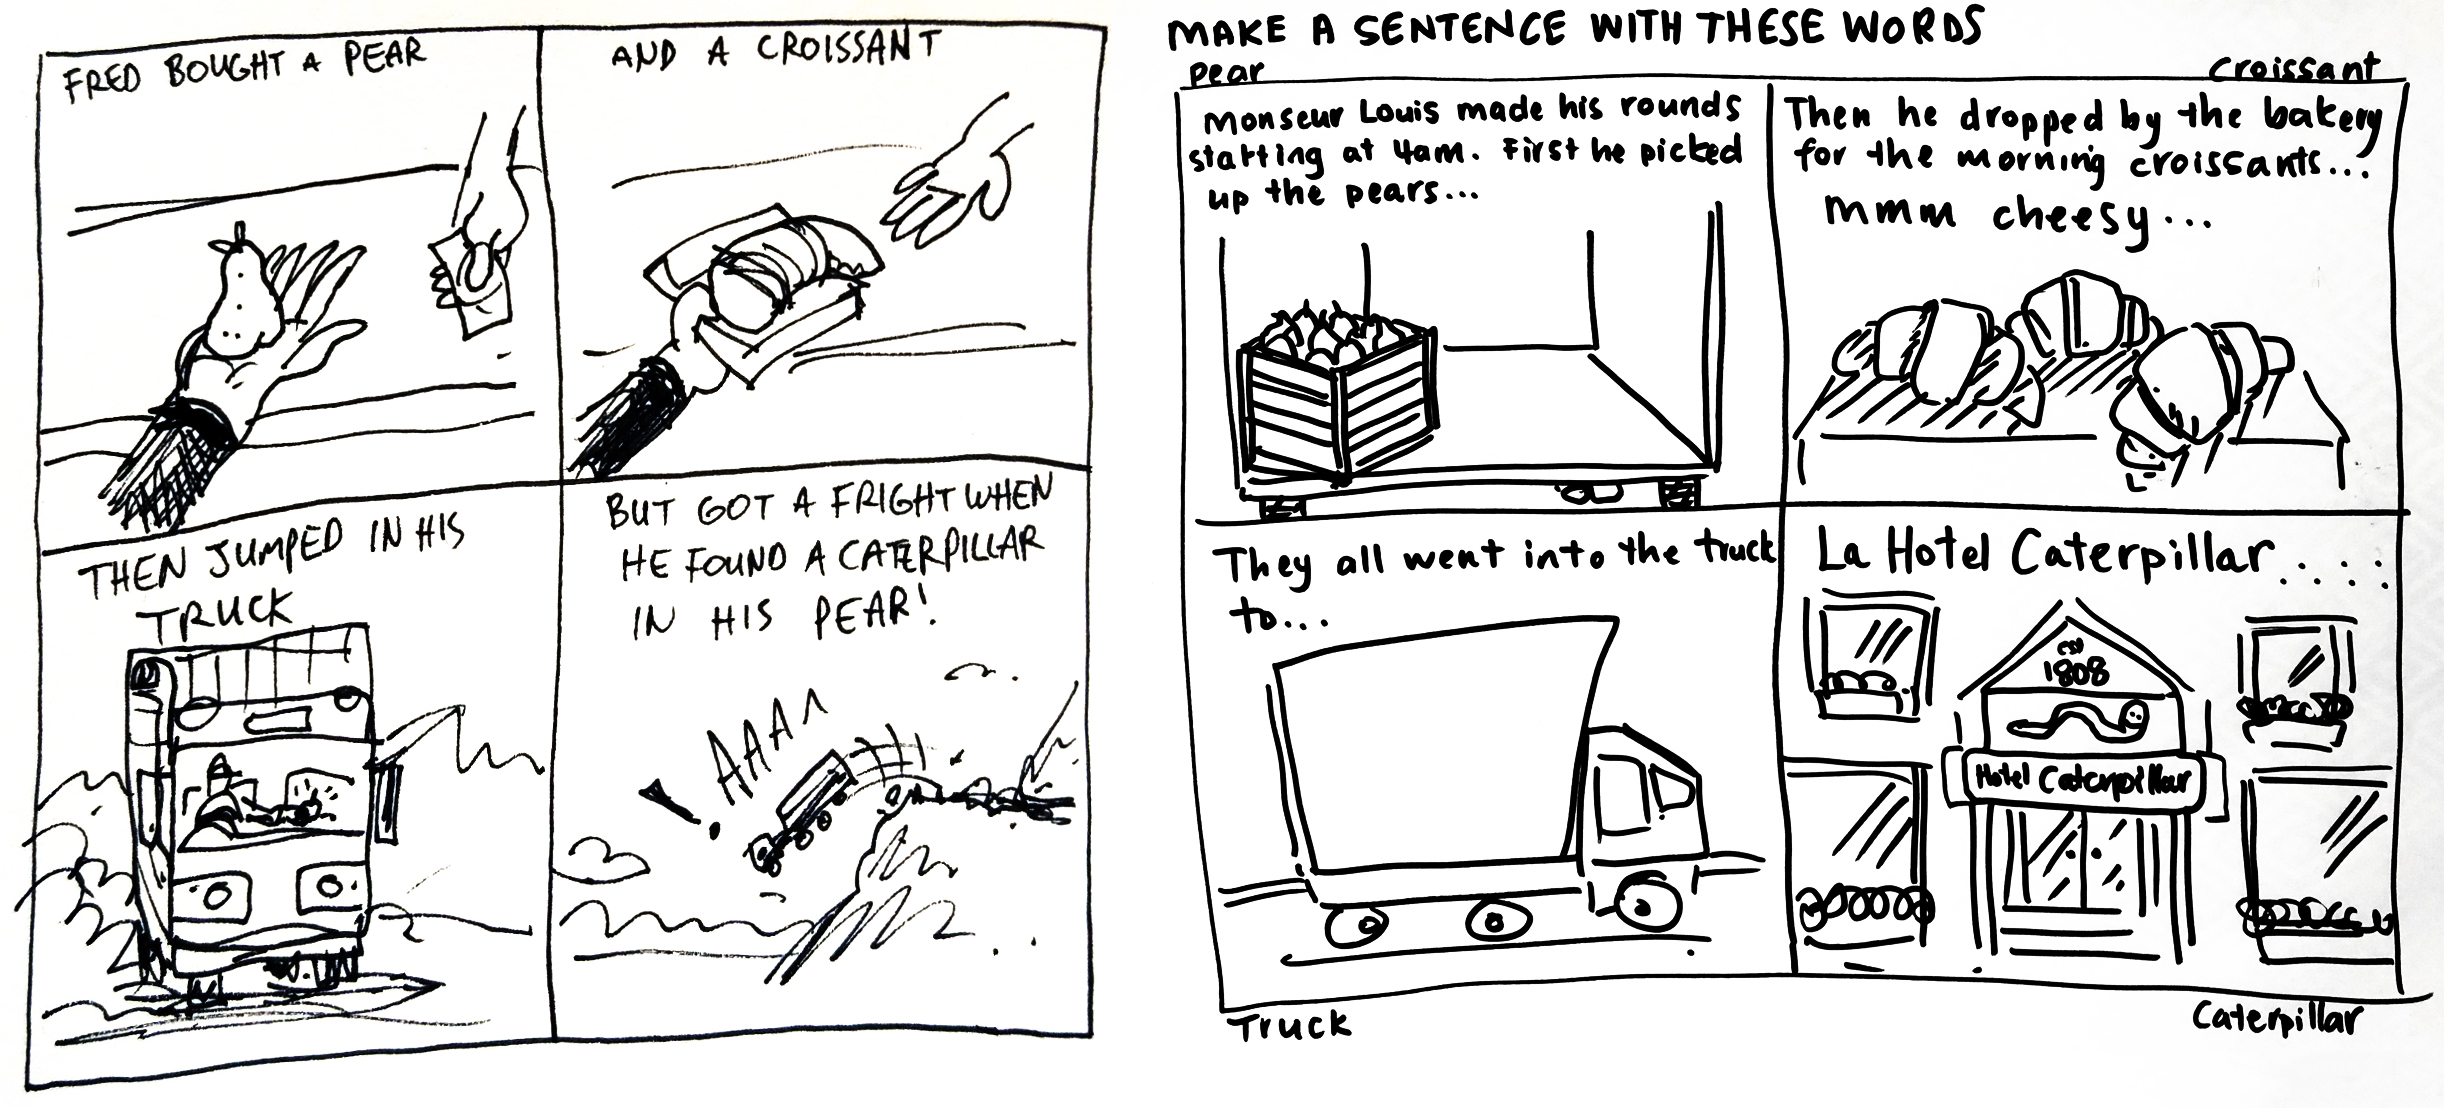 Two hand-drawn examples of storystorming that include the words pear, croissant, truck and caterpillar